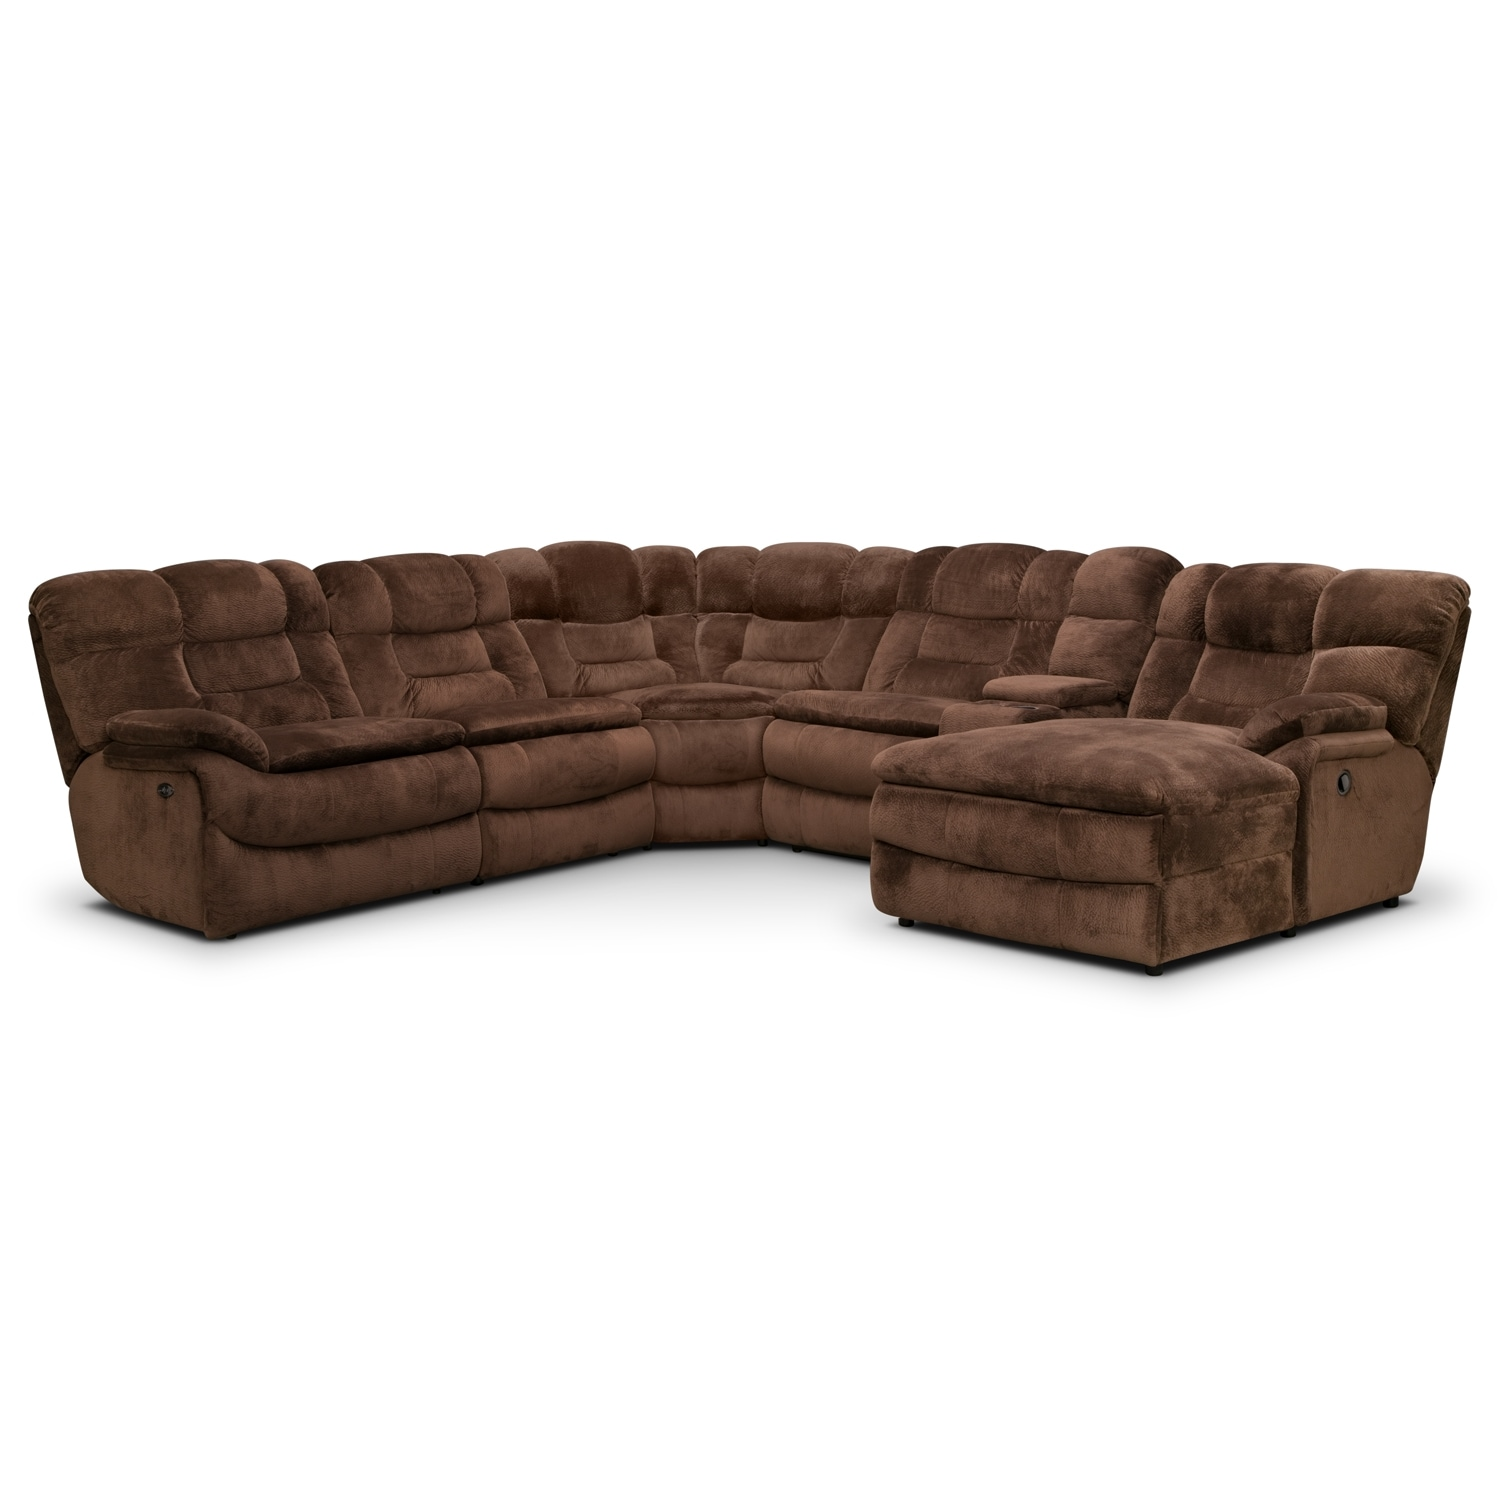 Value city furniture for 6 pc sectional living room